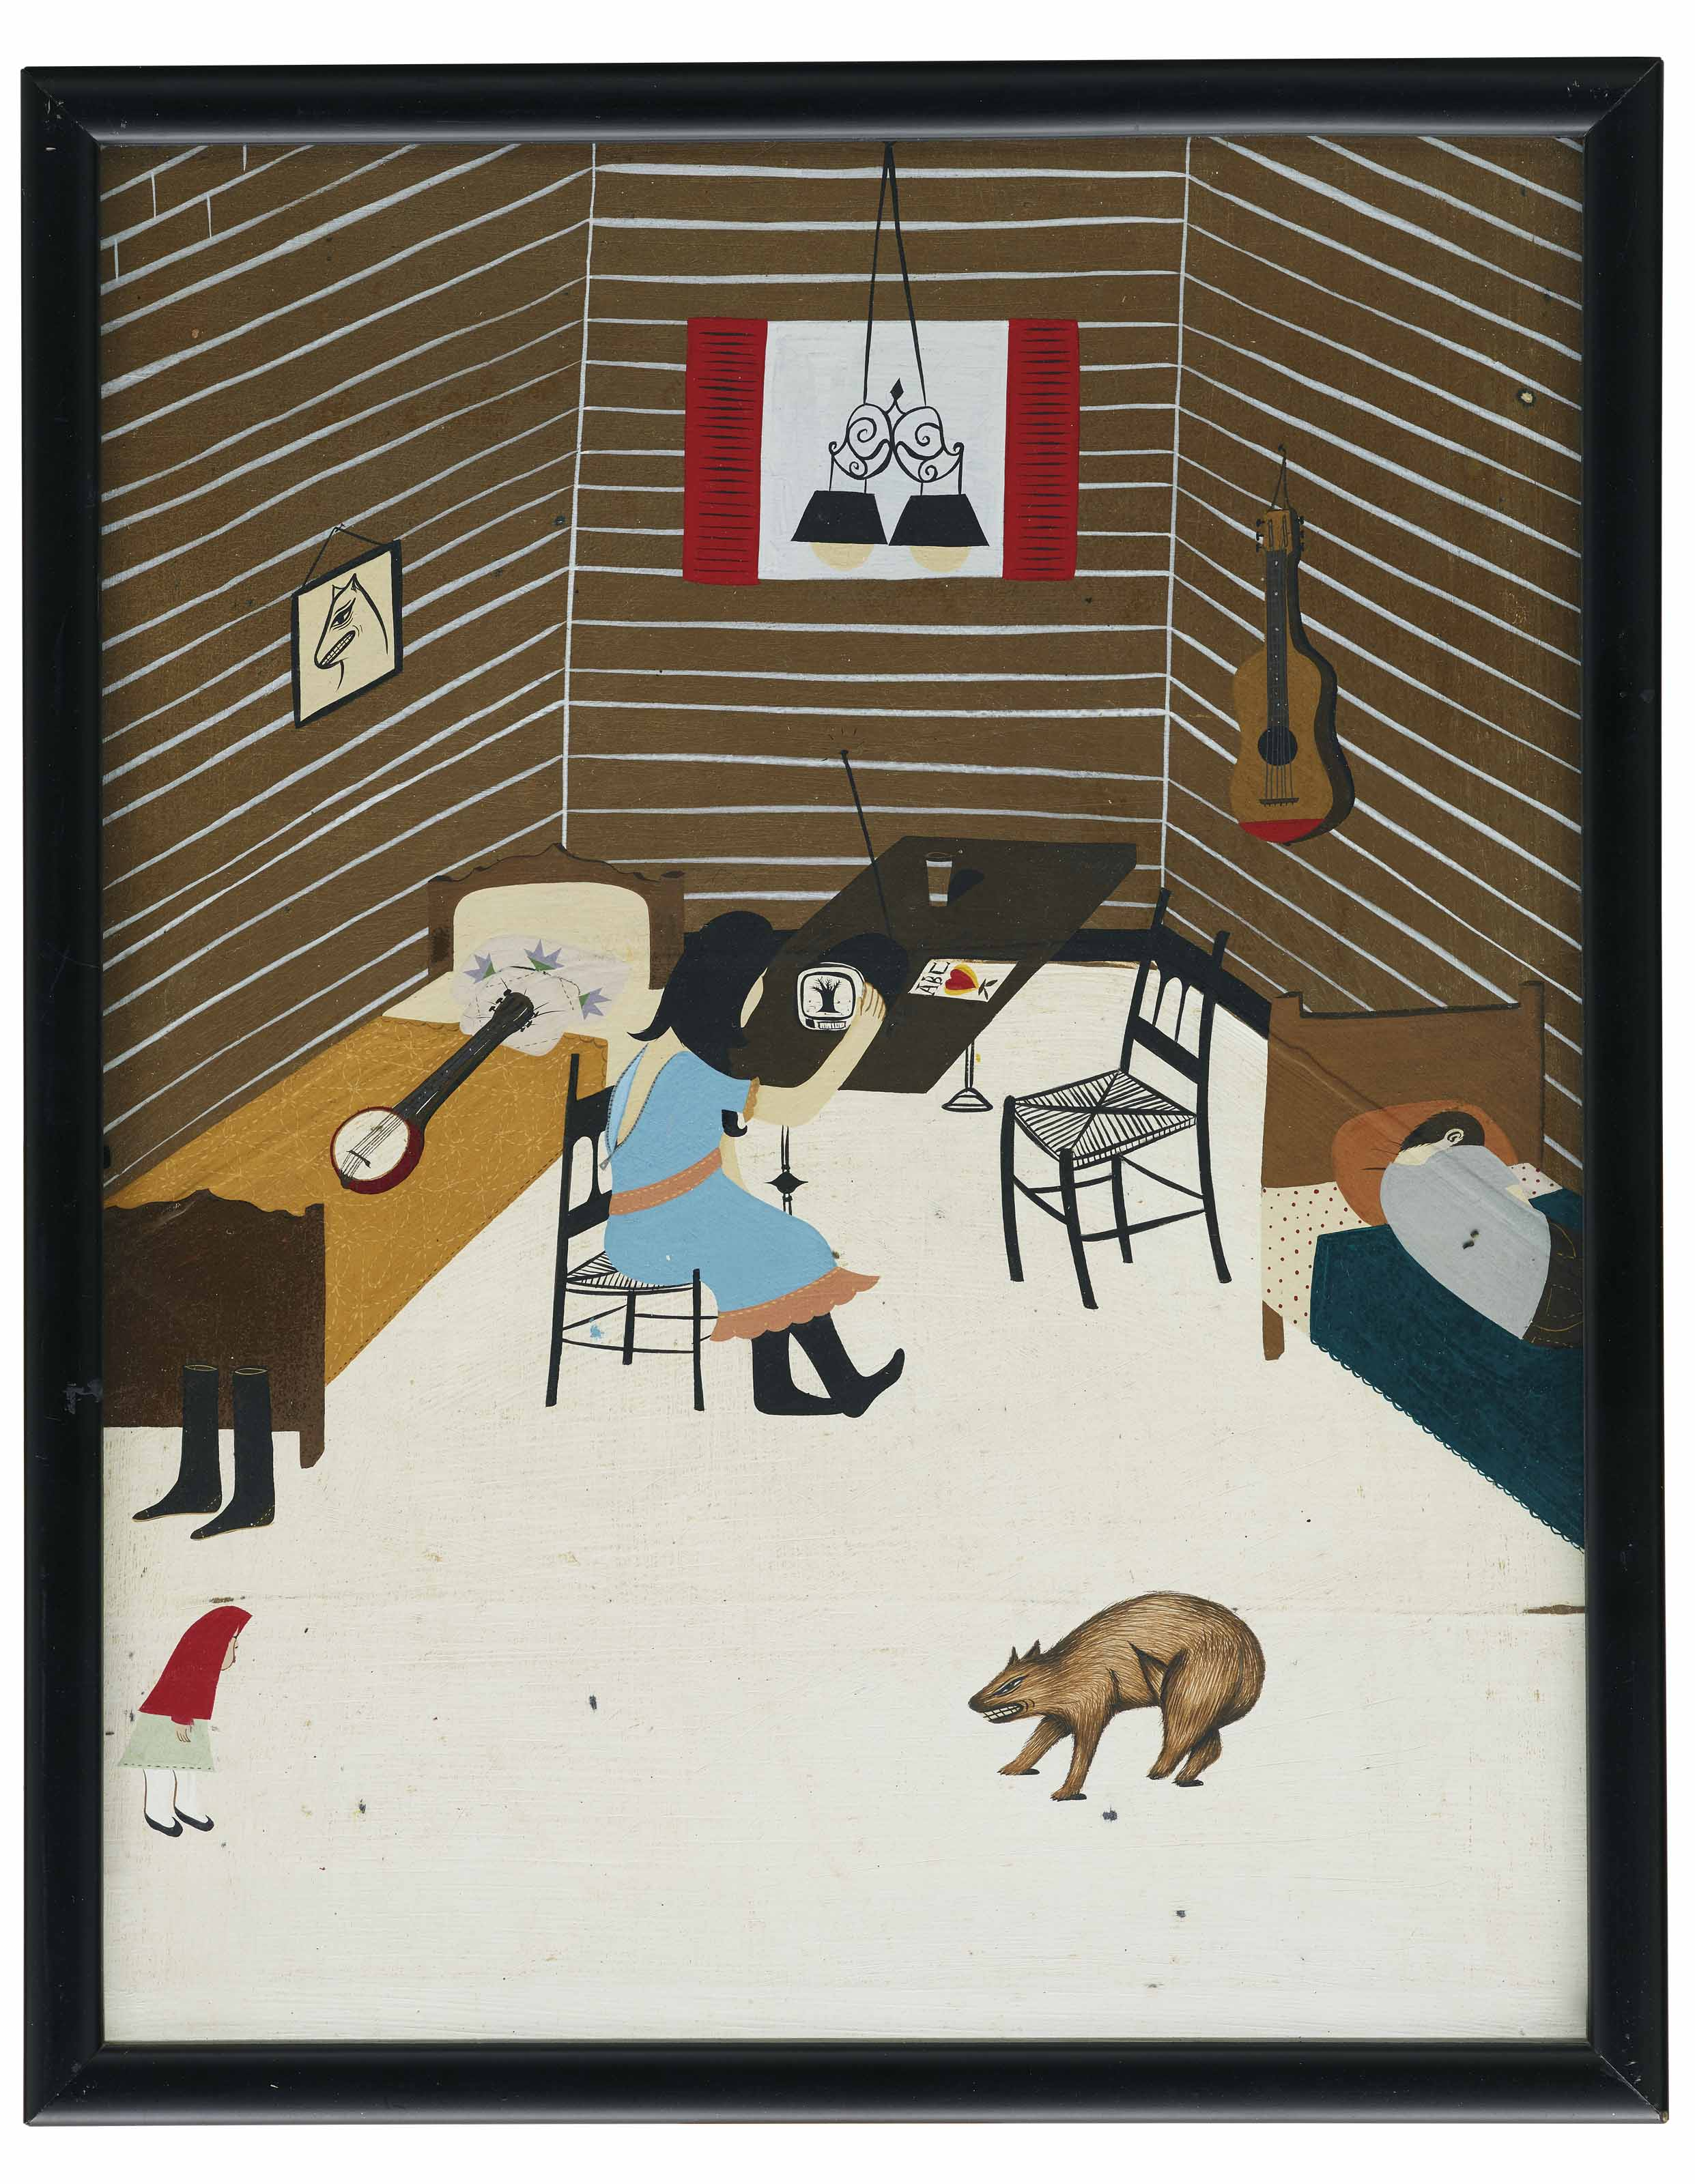 Untitled (Interior with Girl, Bear and Banjo)